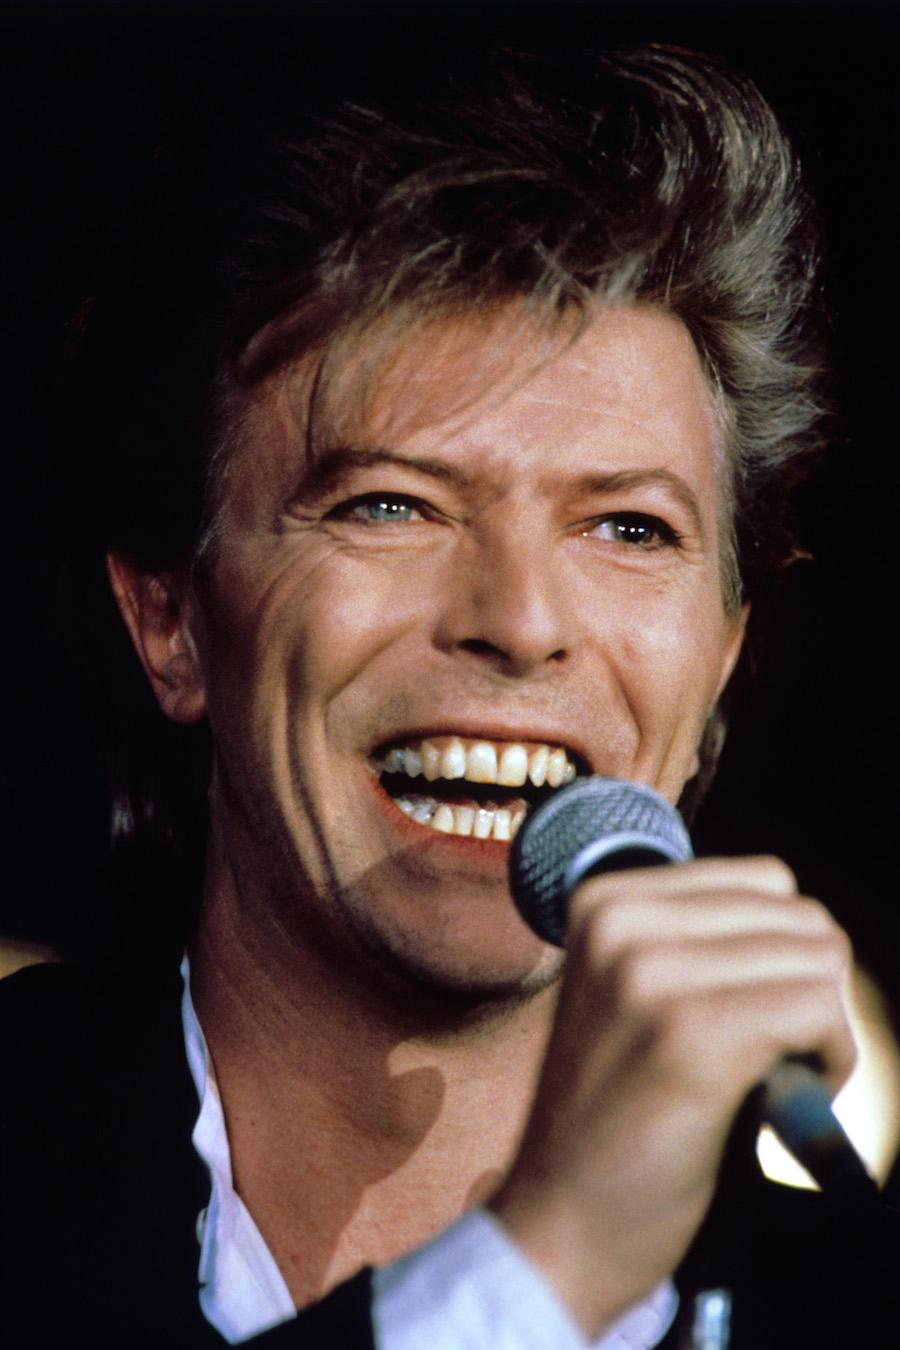 File photo dated March 20, 1987 of David Bowie, who has died following an 18-month battle with cancer. (PA Wire/Zuma Press/TNS)